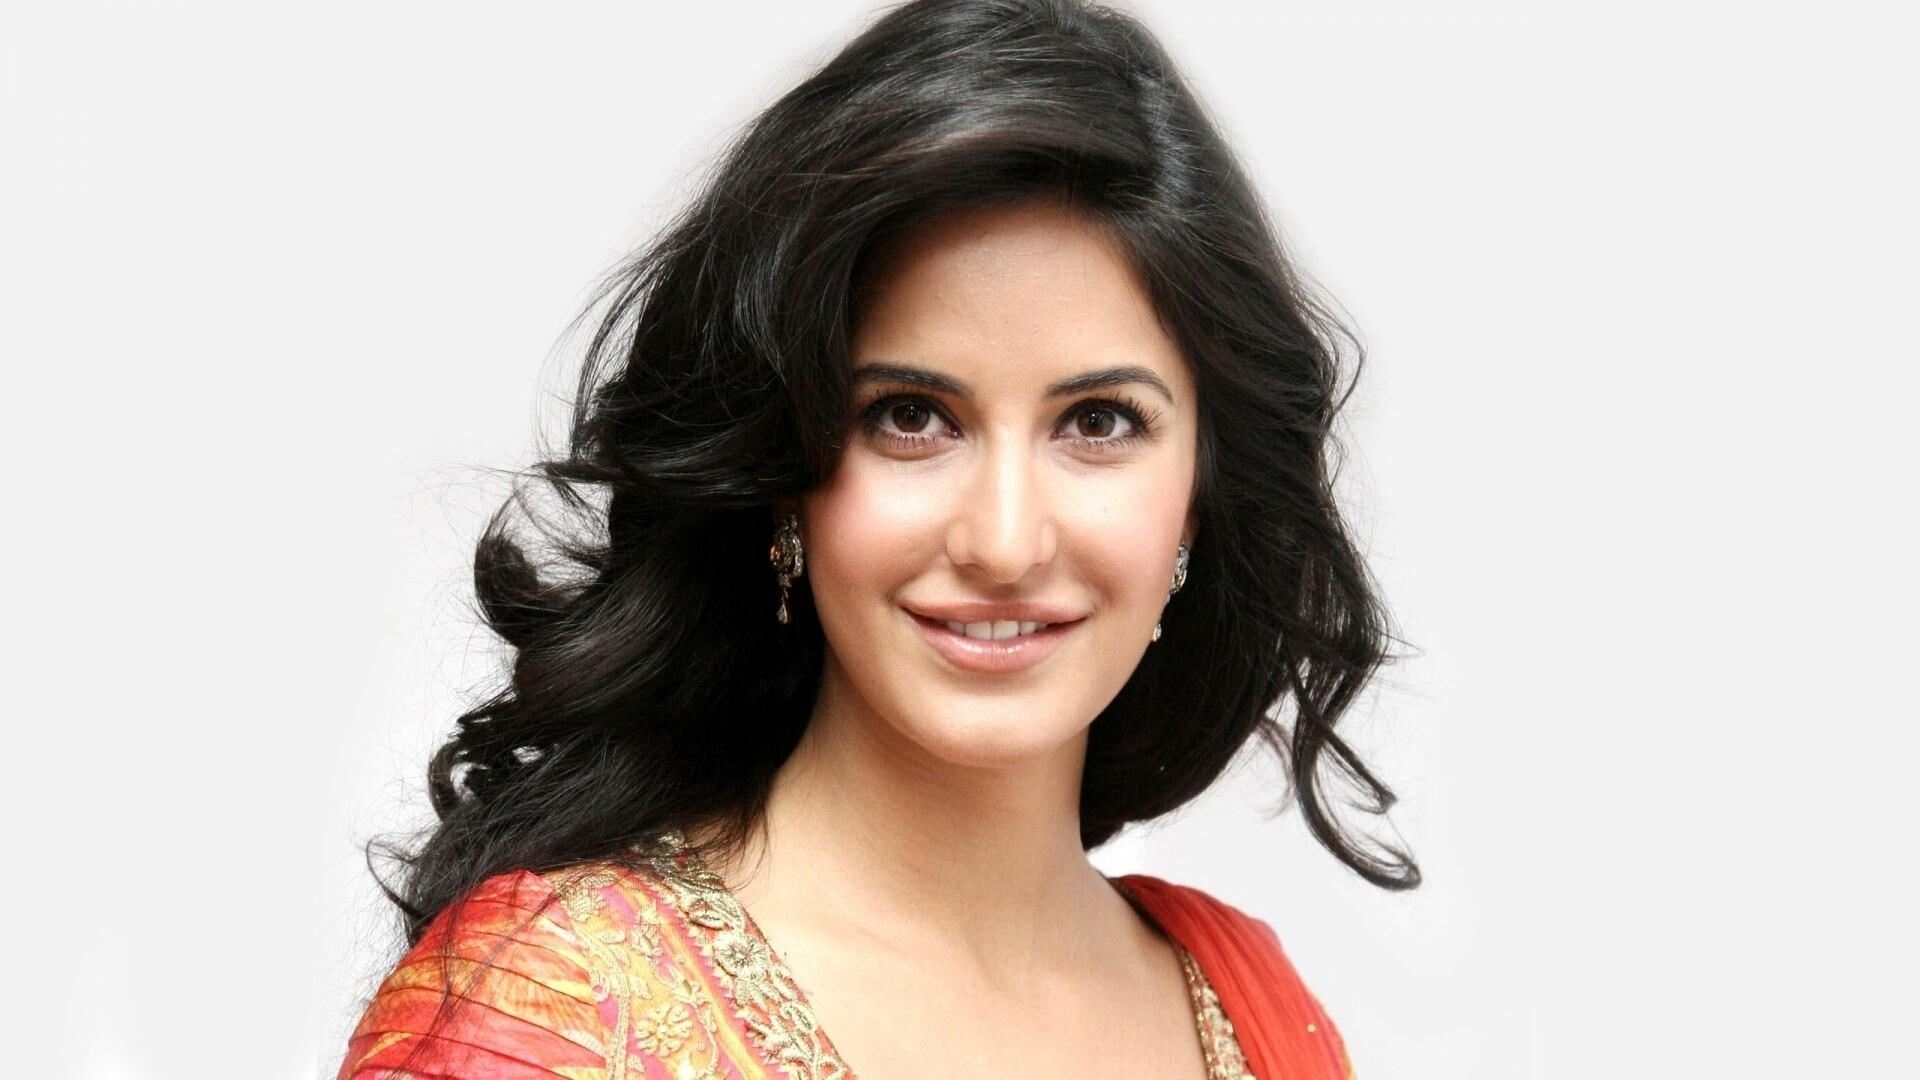 beautiful bollywood actress katrina kaif wallpaper | hd wallpapers